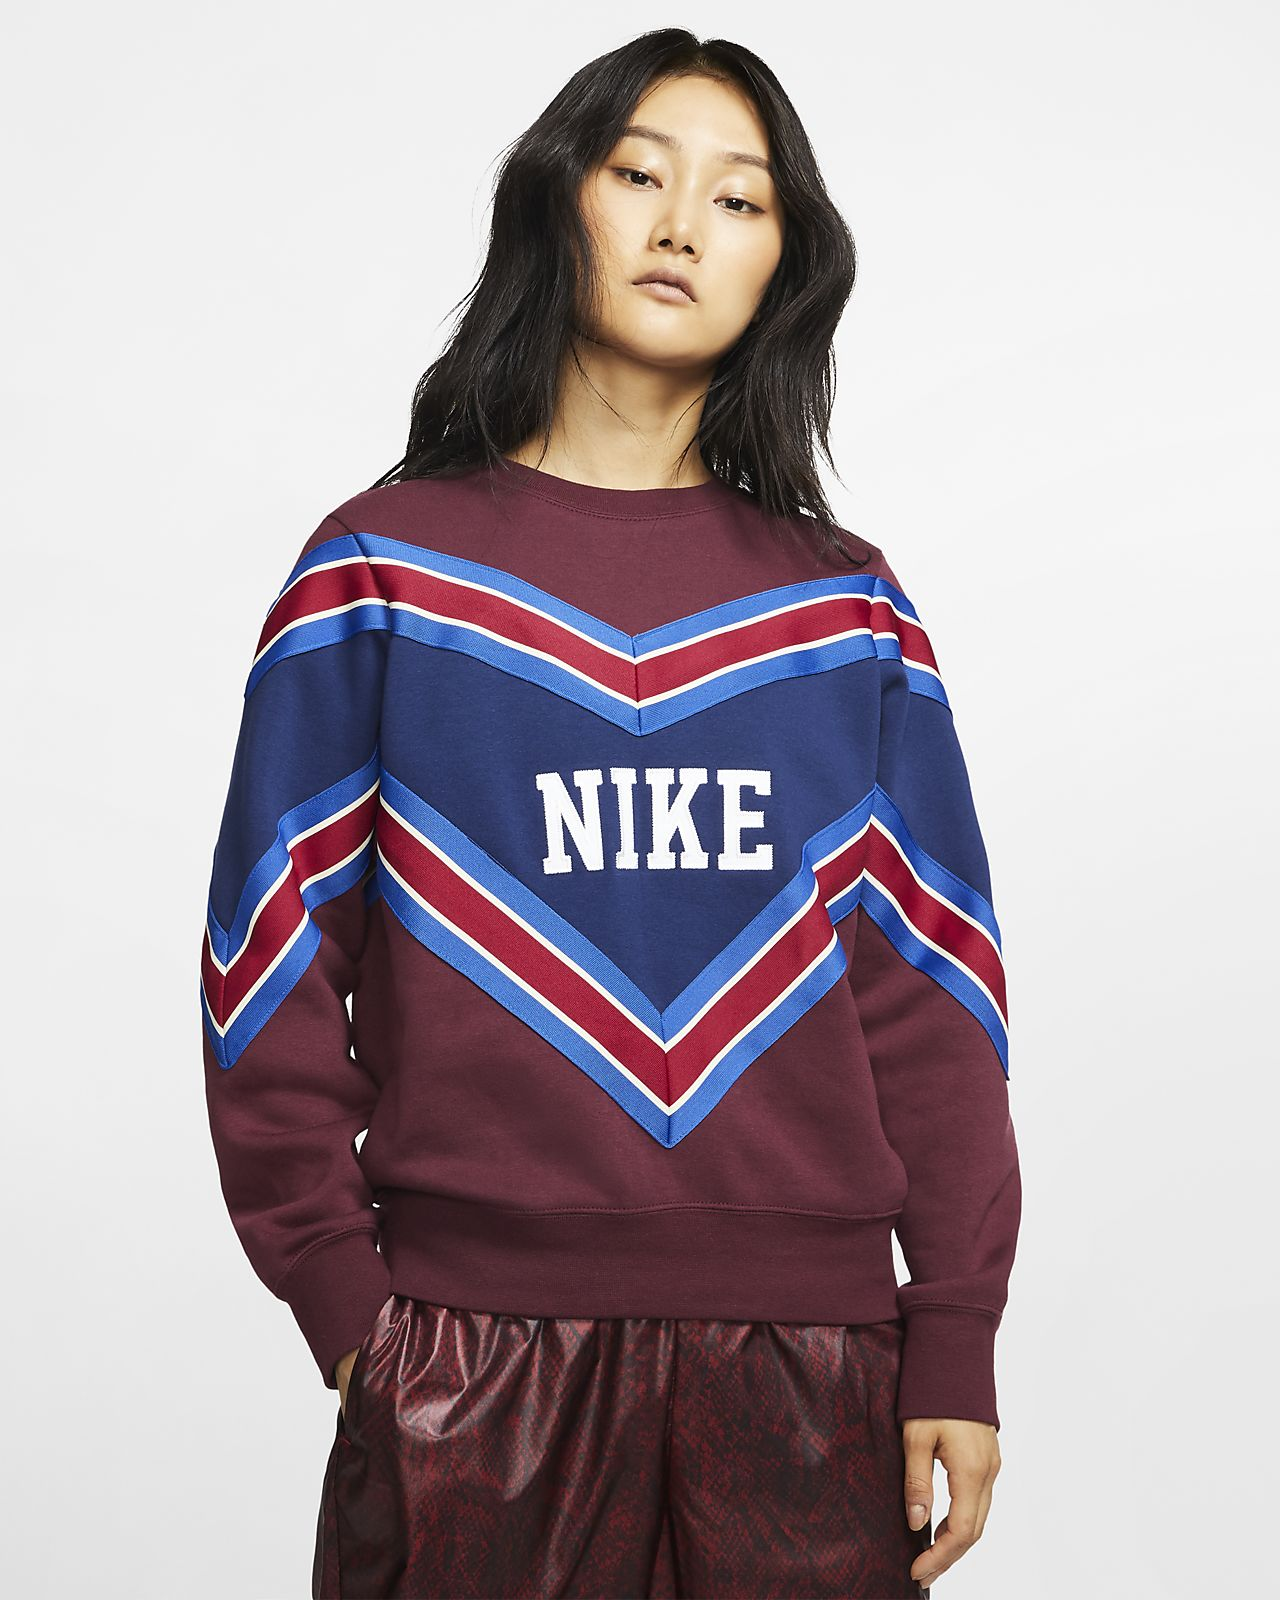 Details about Nike Sportswear NSW Men's Woven Crew L Red White Blue Casual Pullover Sweatshirt